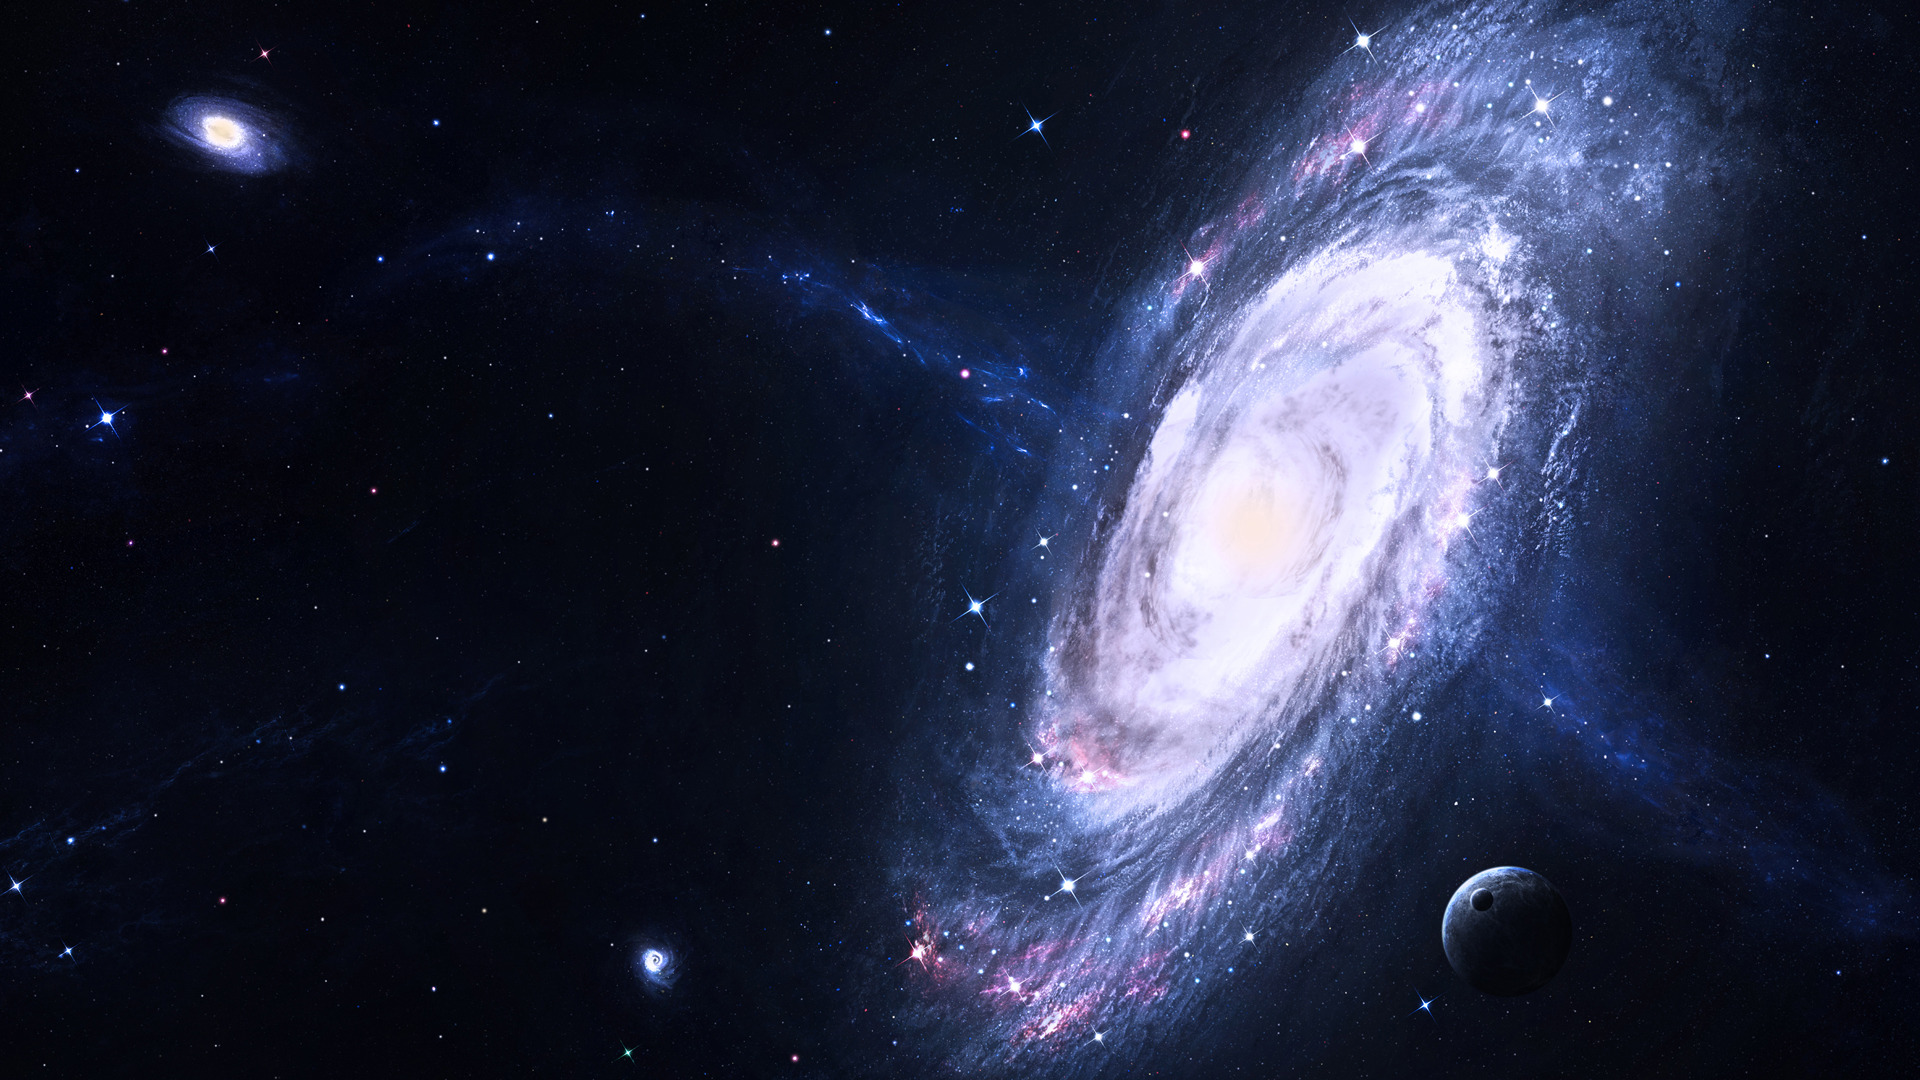 galaxies-planets-space-stars